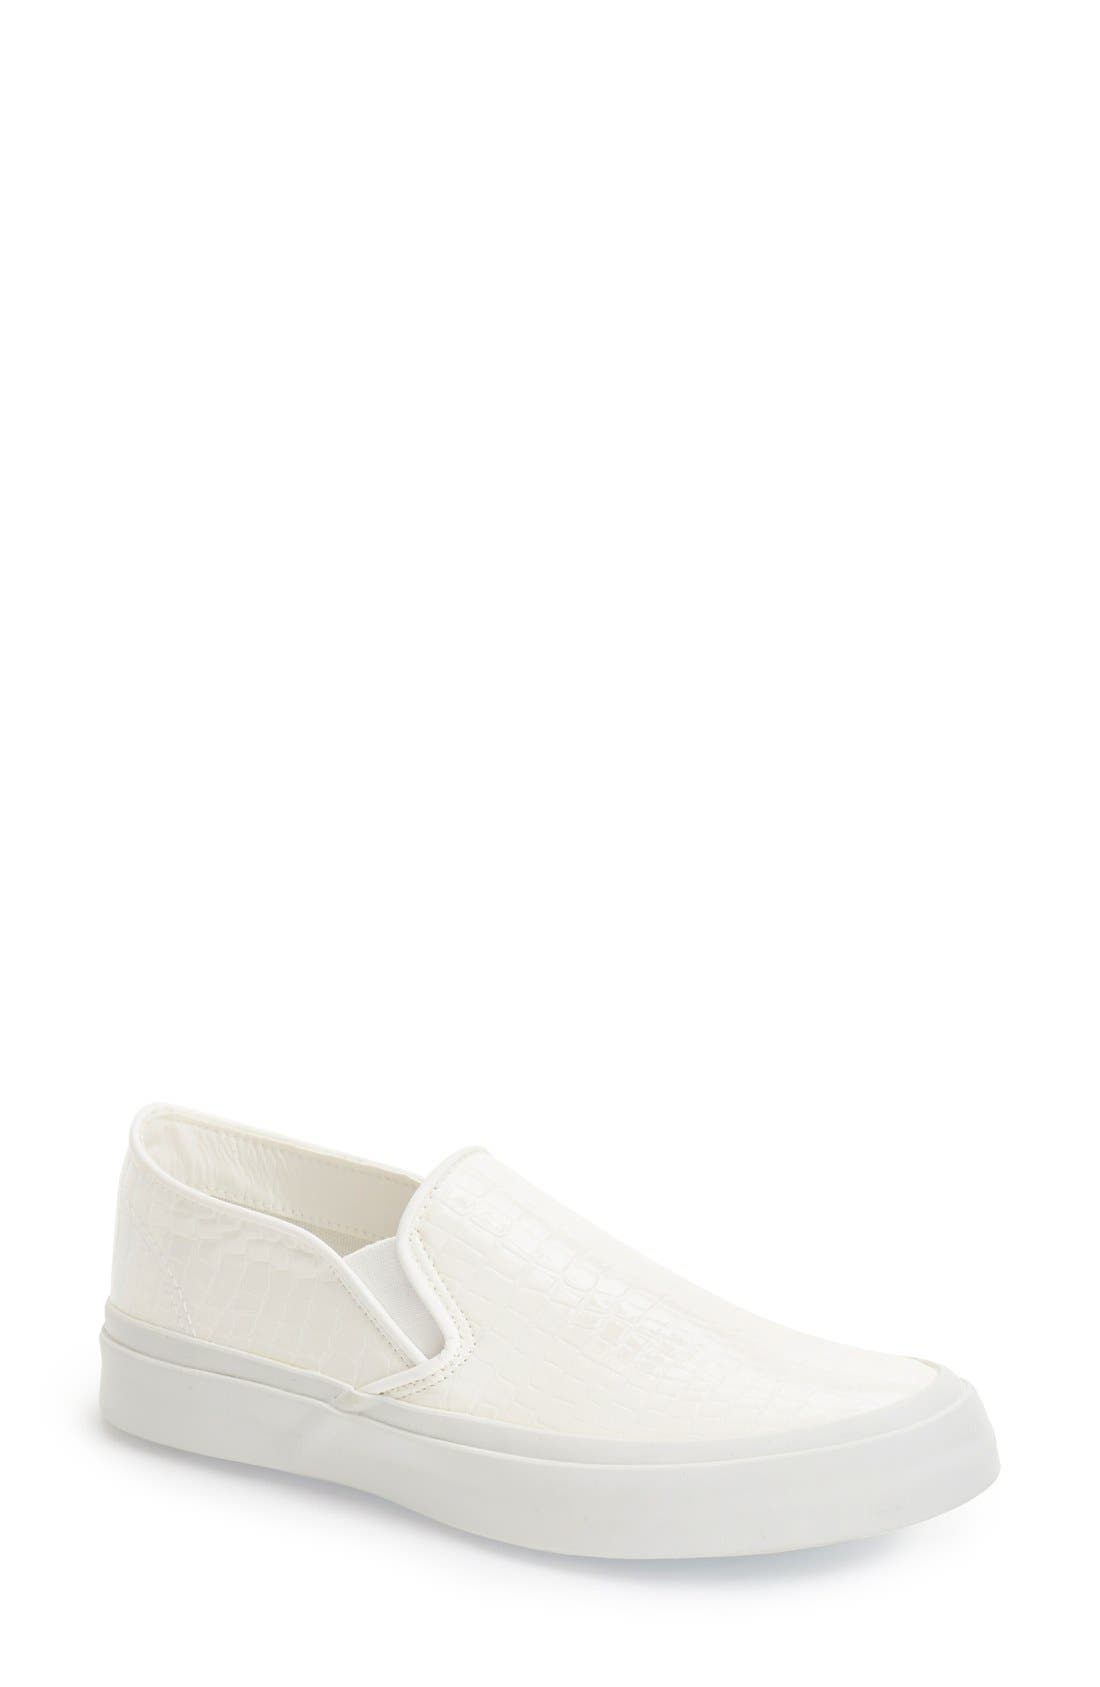 Slip-On Sneaker,                         Main,                         color, White